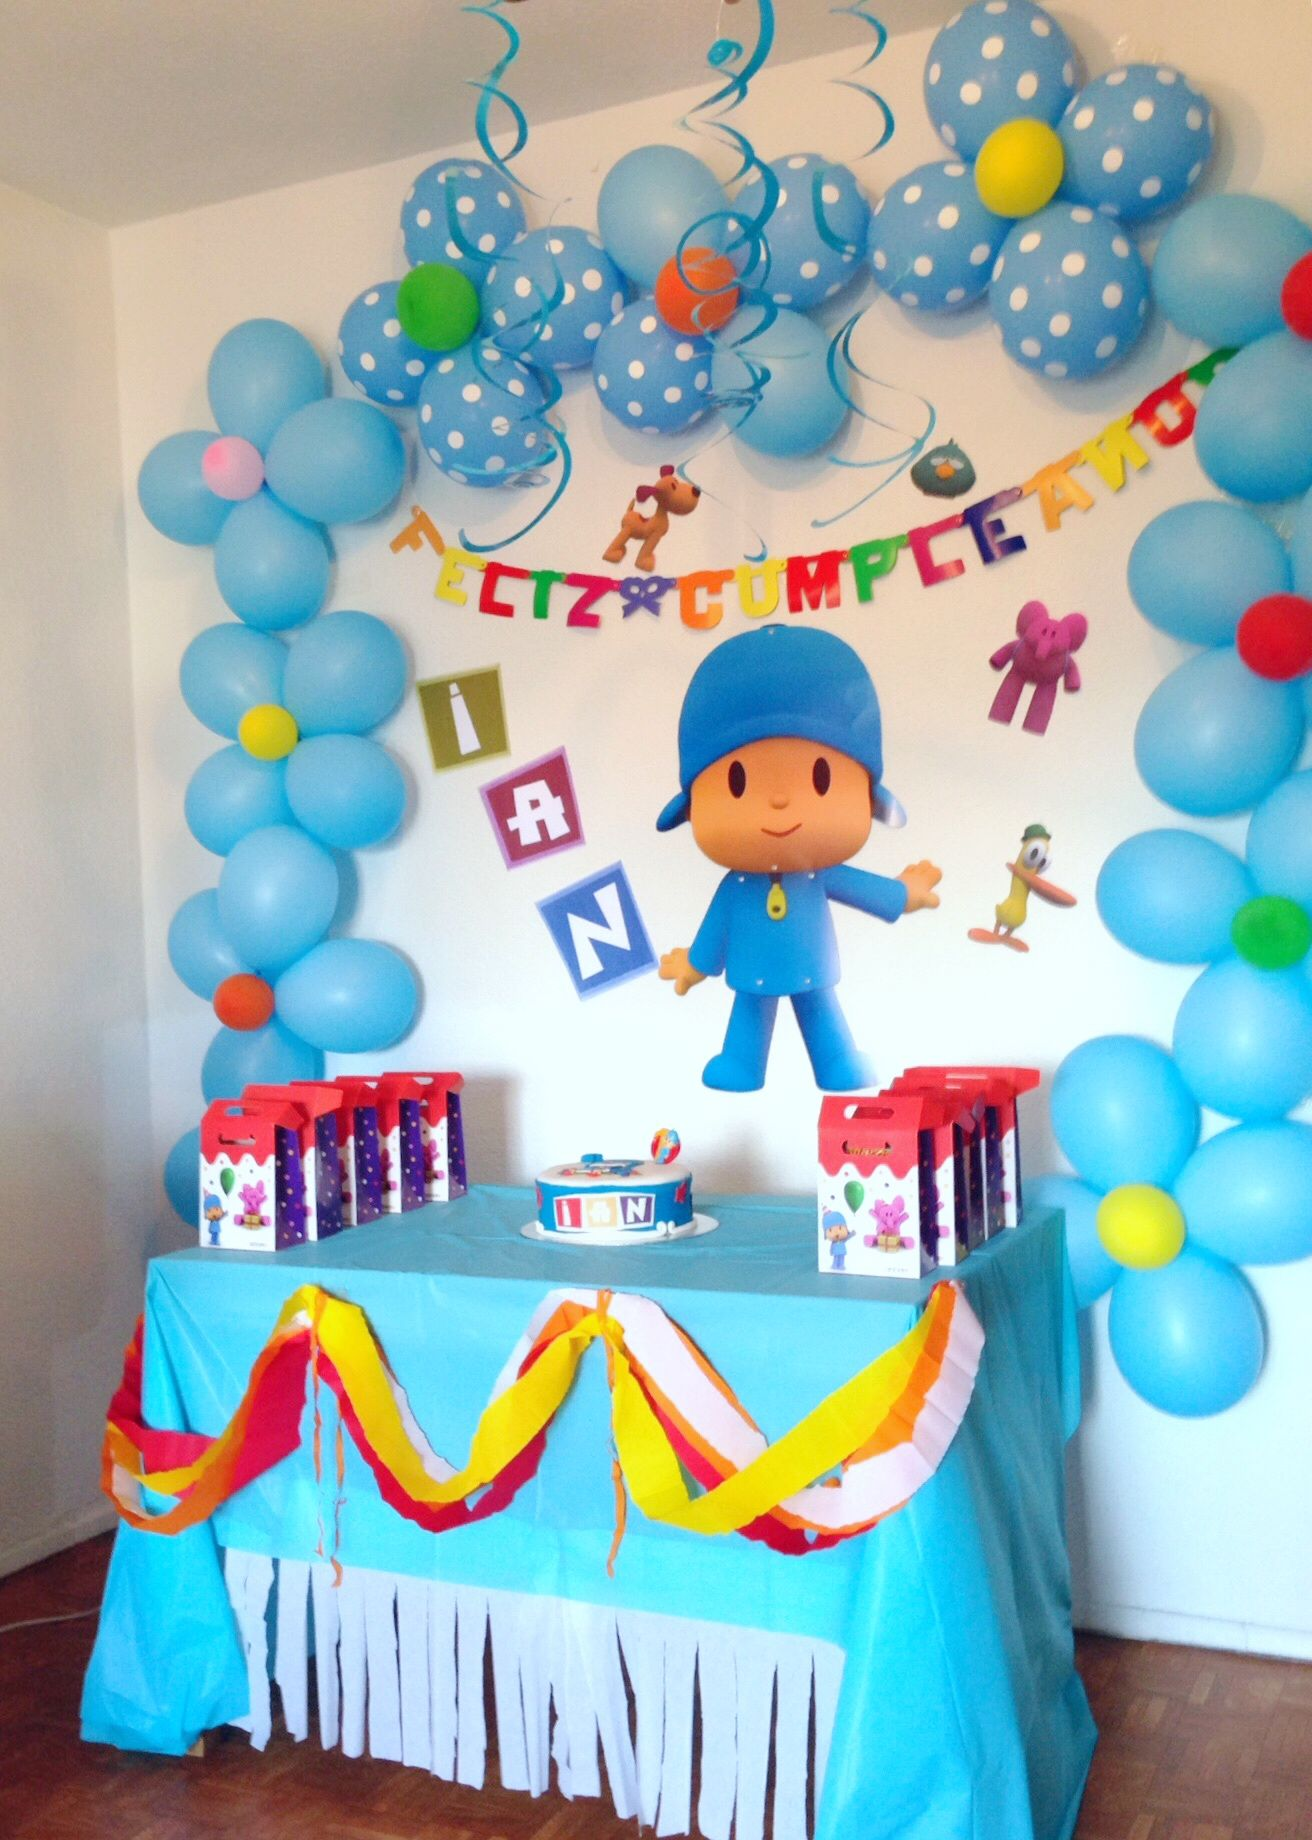 Resultado de imagen para pocoyo cumplea os decoracion for Ideas originales de decoracion